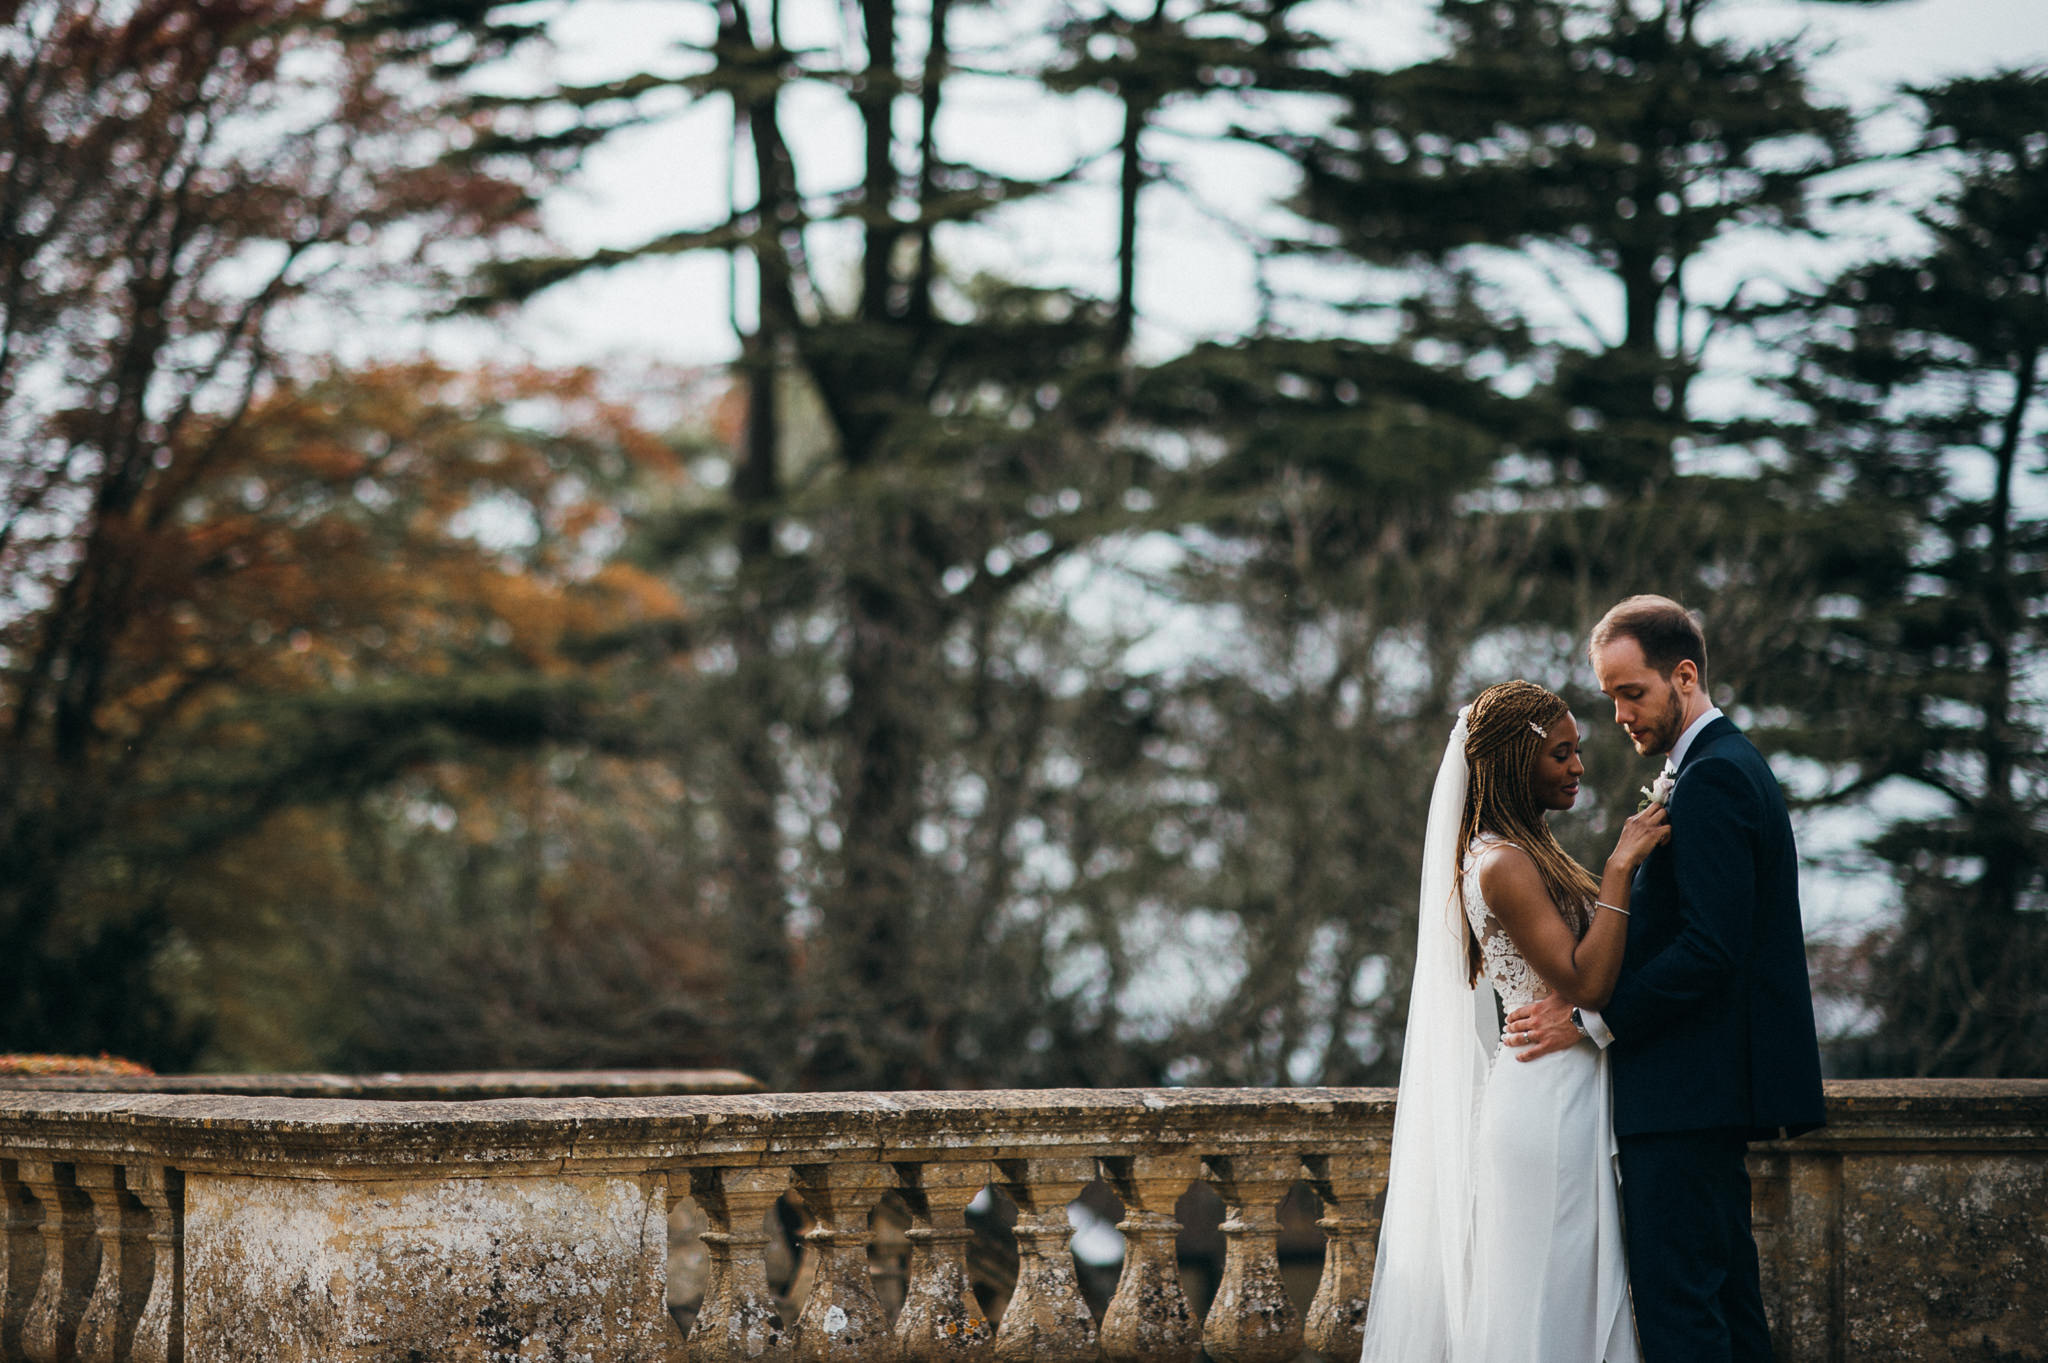 Wedding photography Coombe Lodge Blagdon